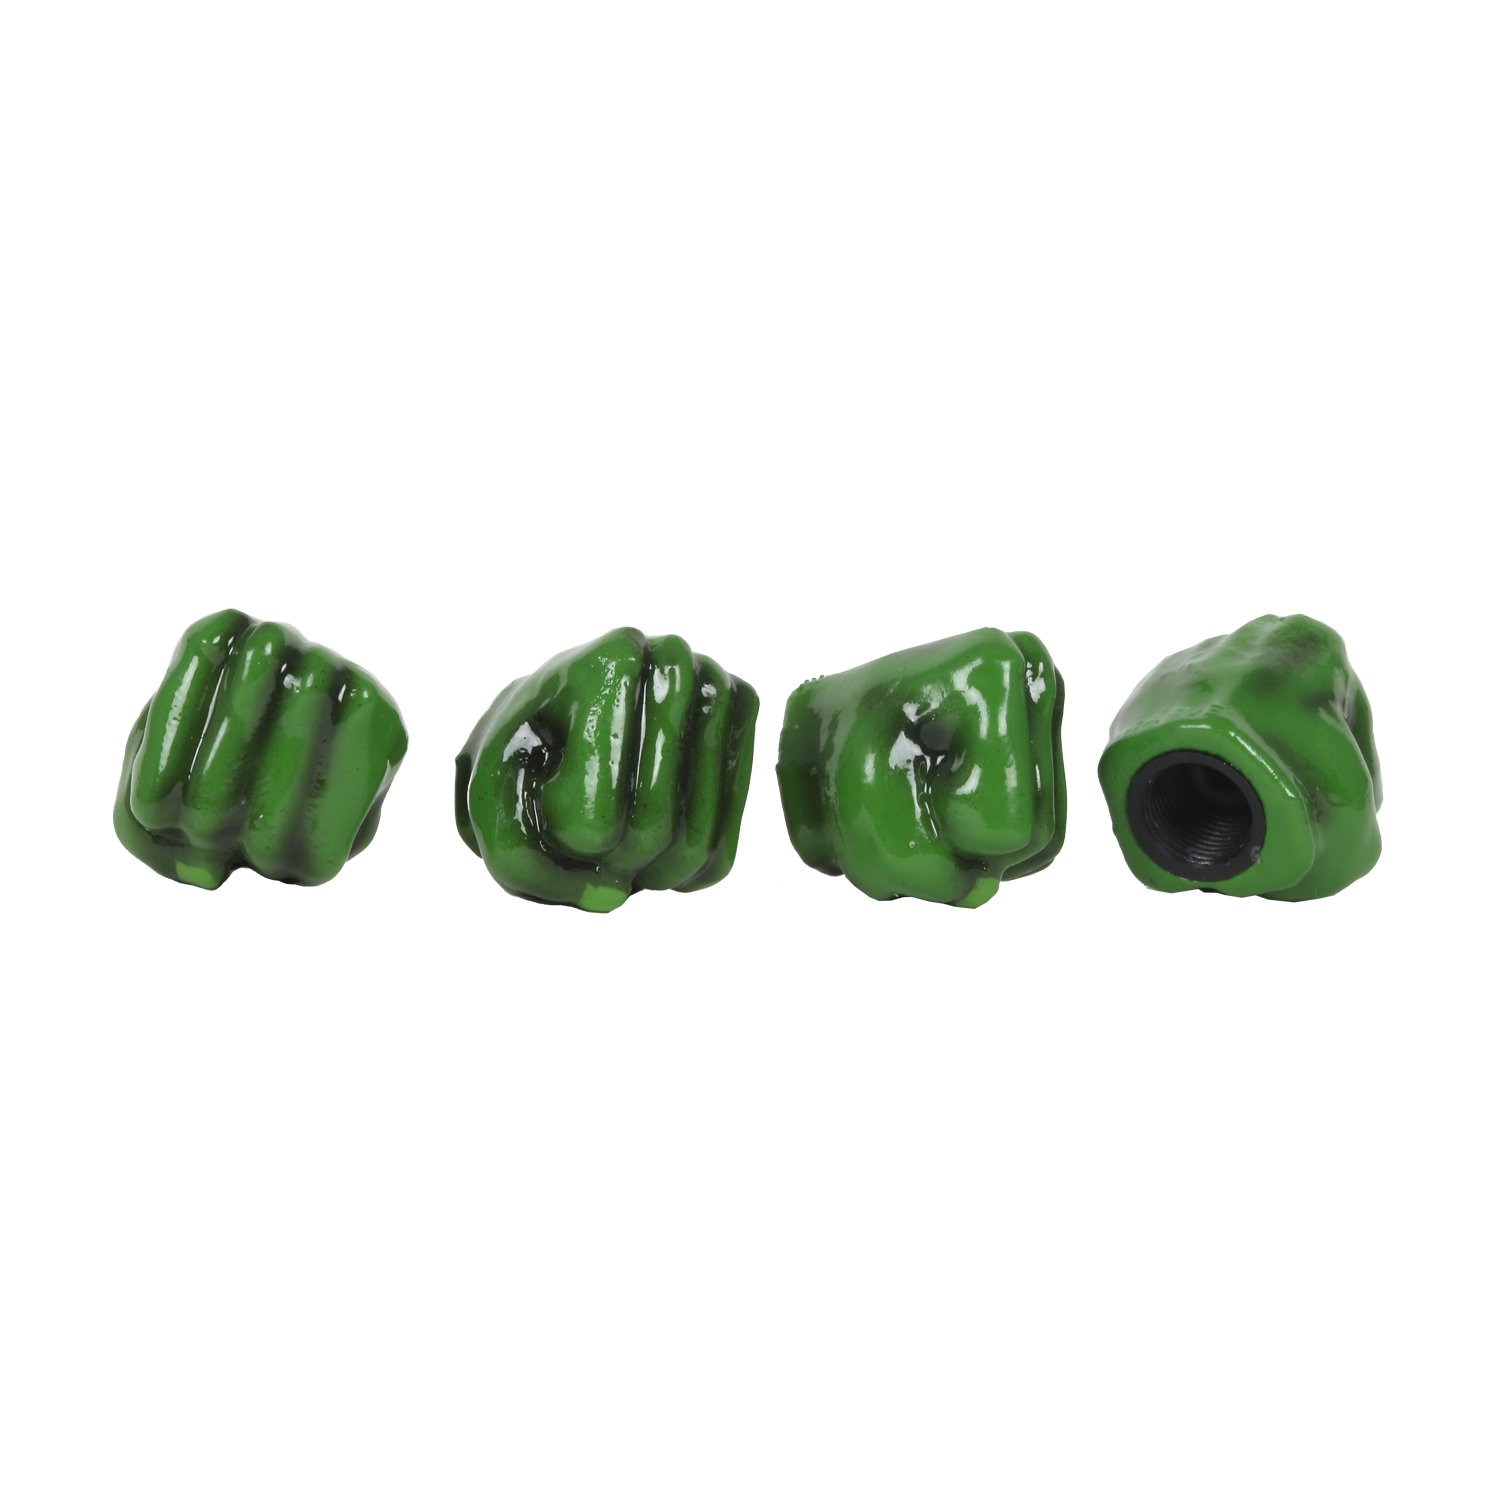 Pilot MVL-0301 Marvel Hulk Valve Caps by Pilot Automotive